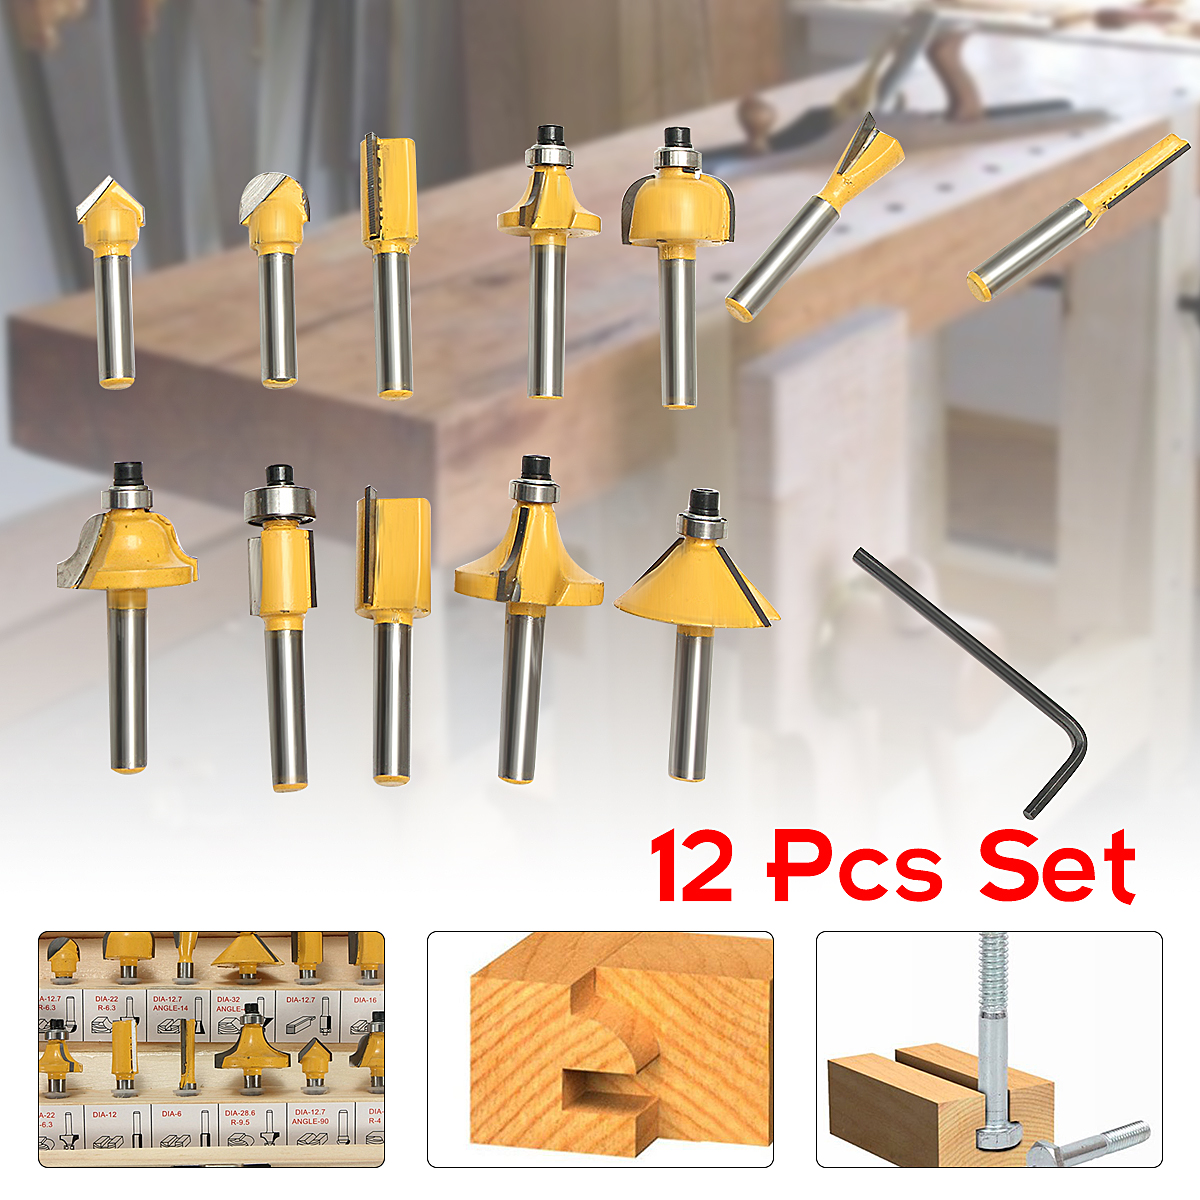 12pcs 1/4 Inch Shank Router Bit Set Tungsten Carbide Woodworking Cutter Rotary Tool